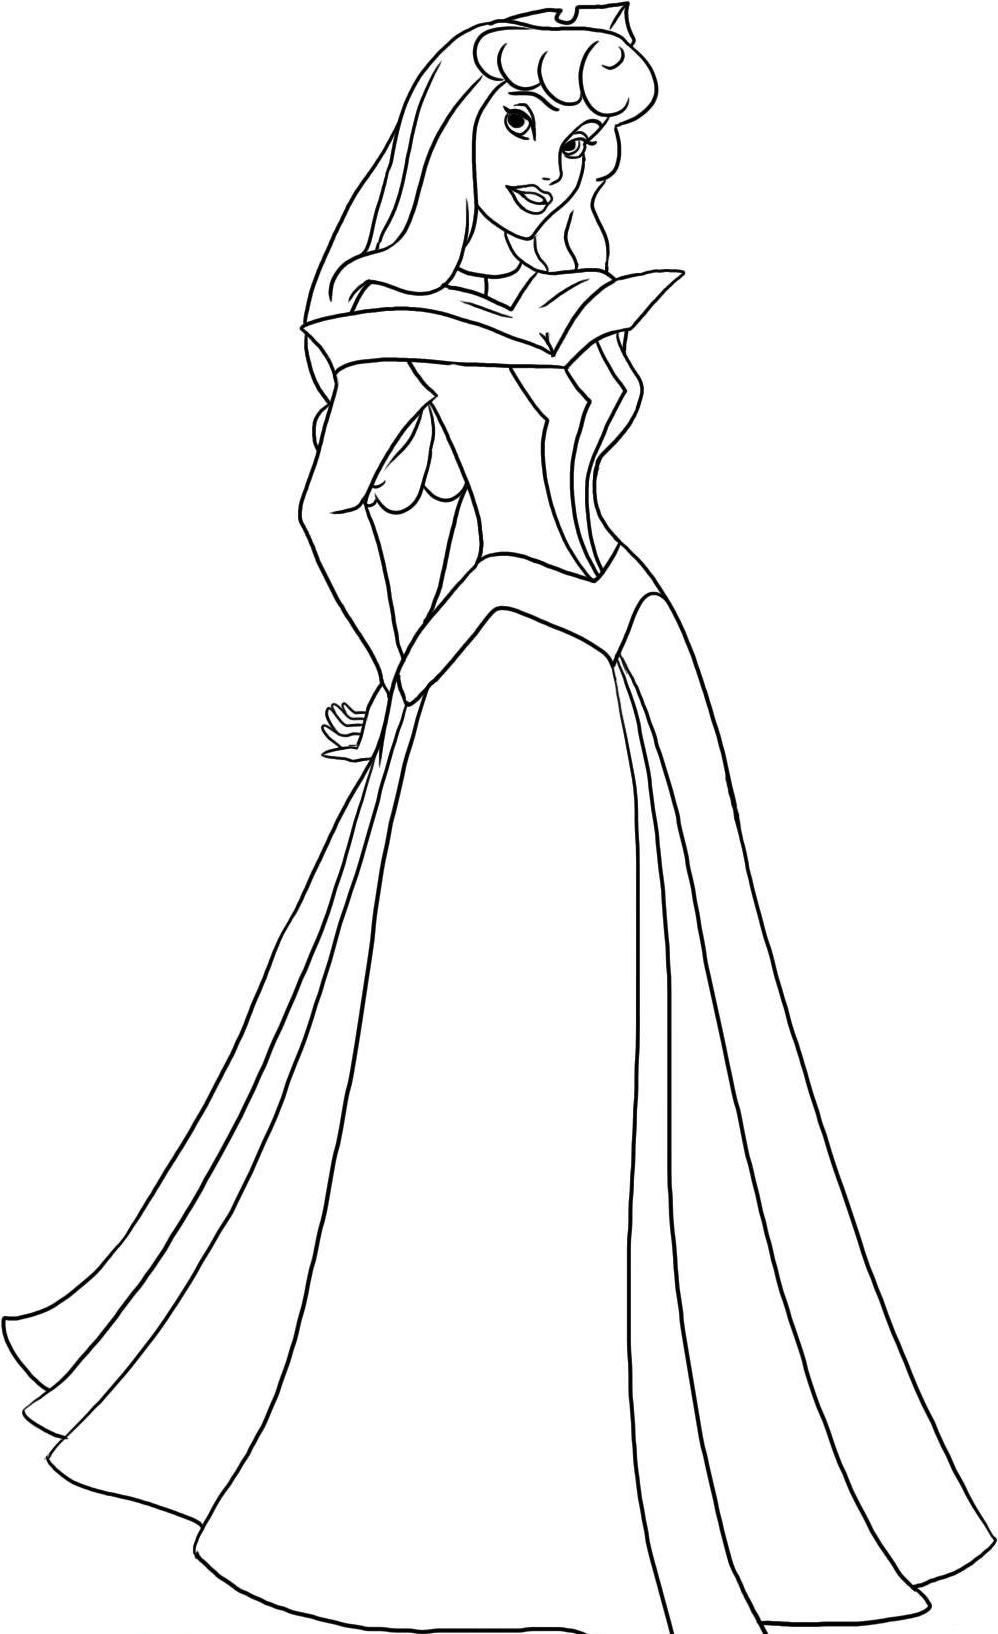 Disney Princess Are Dreamy Coloring Page Coloring Pages